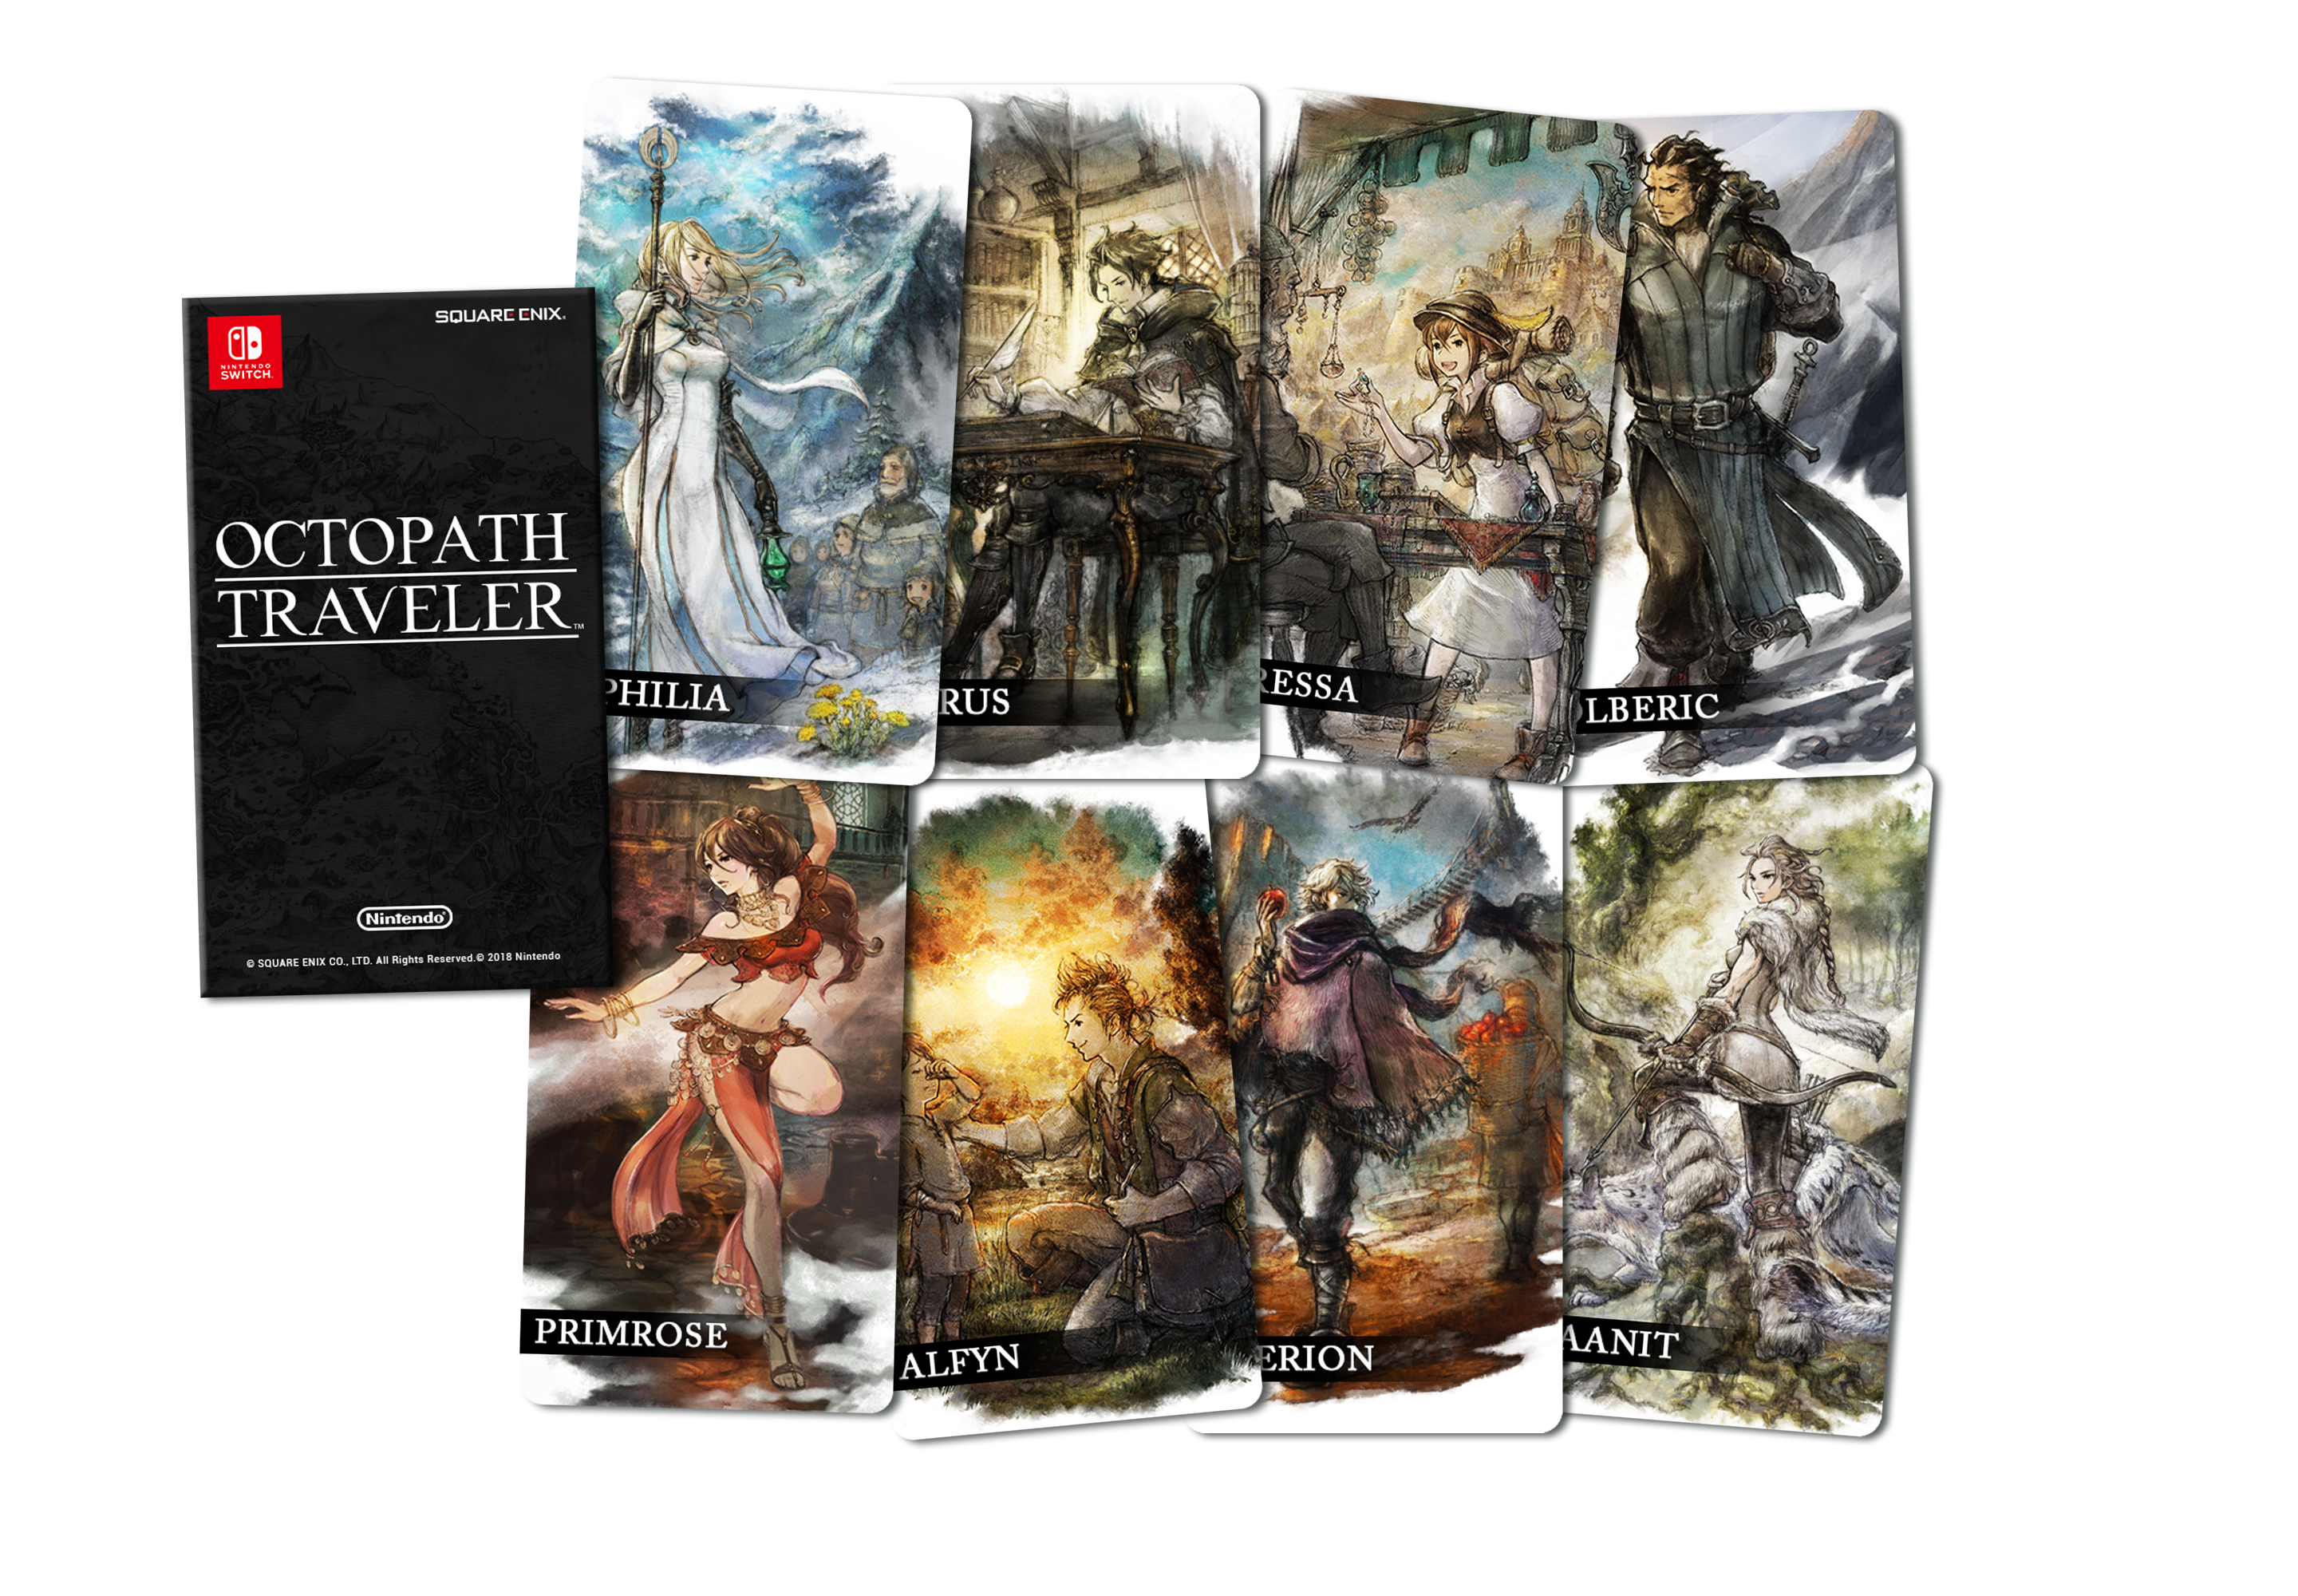 http://www.gamepark.hu/image/catalog/111/OT_CollectableCards_All_Image_01-1.png